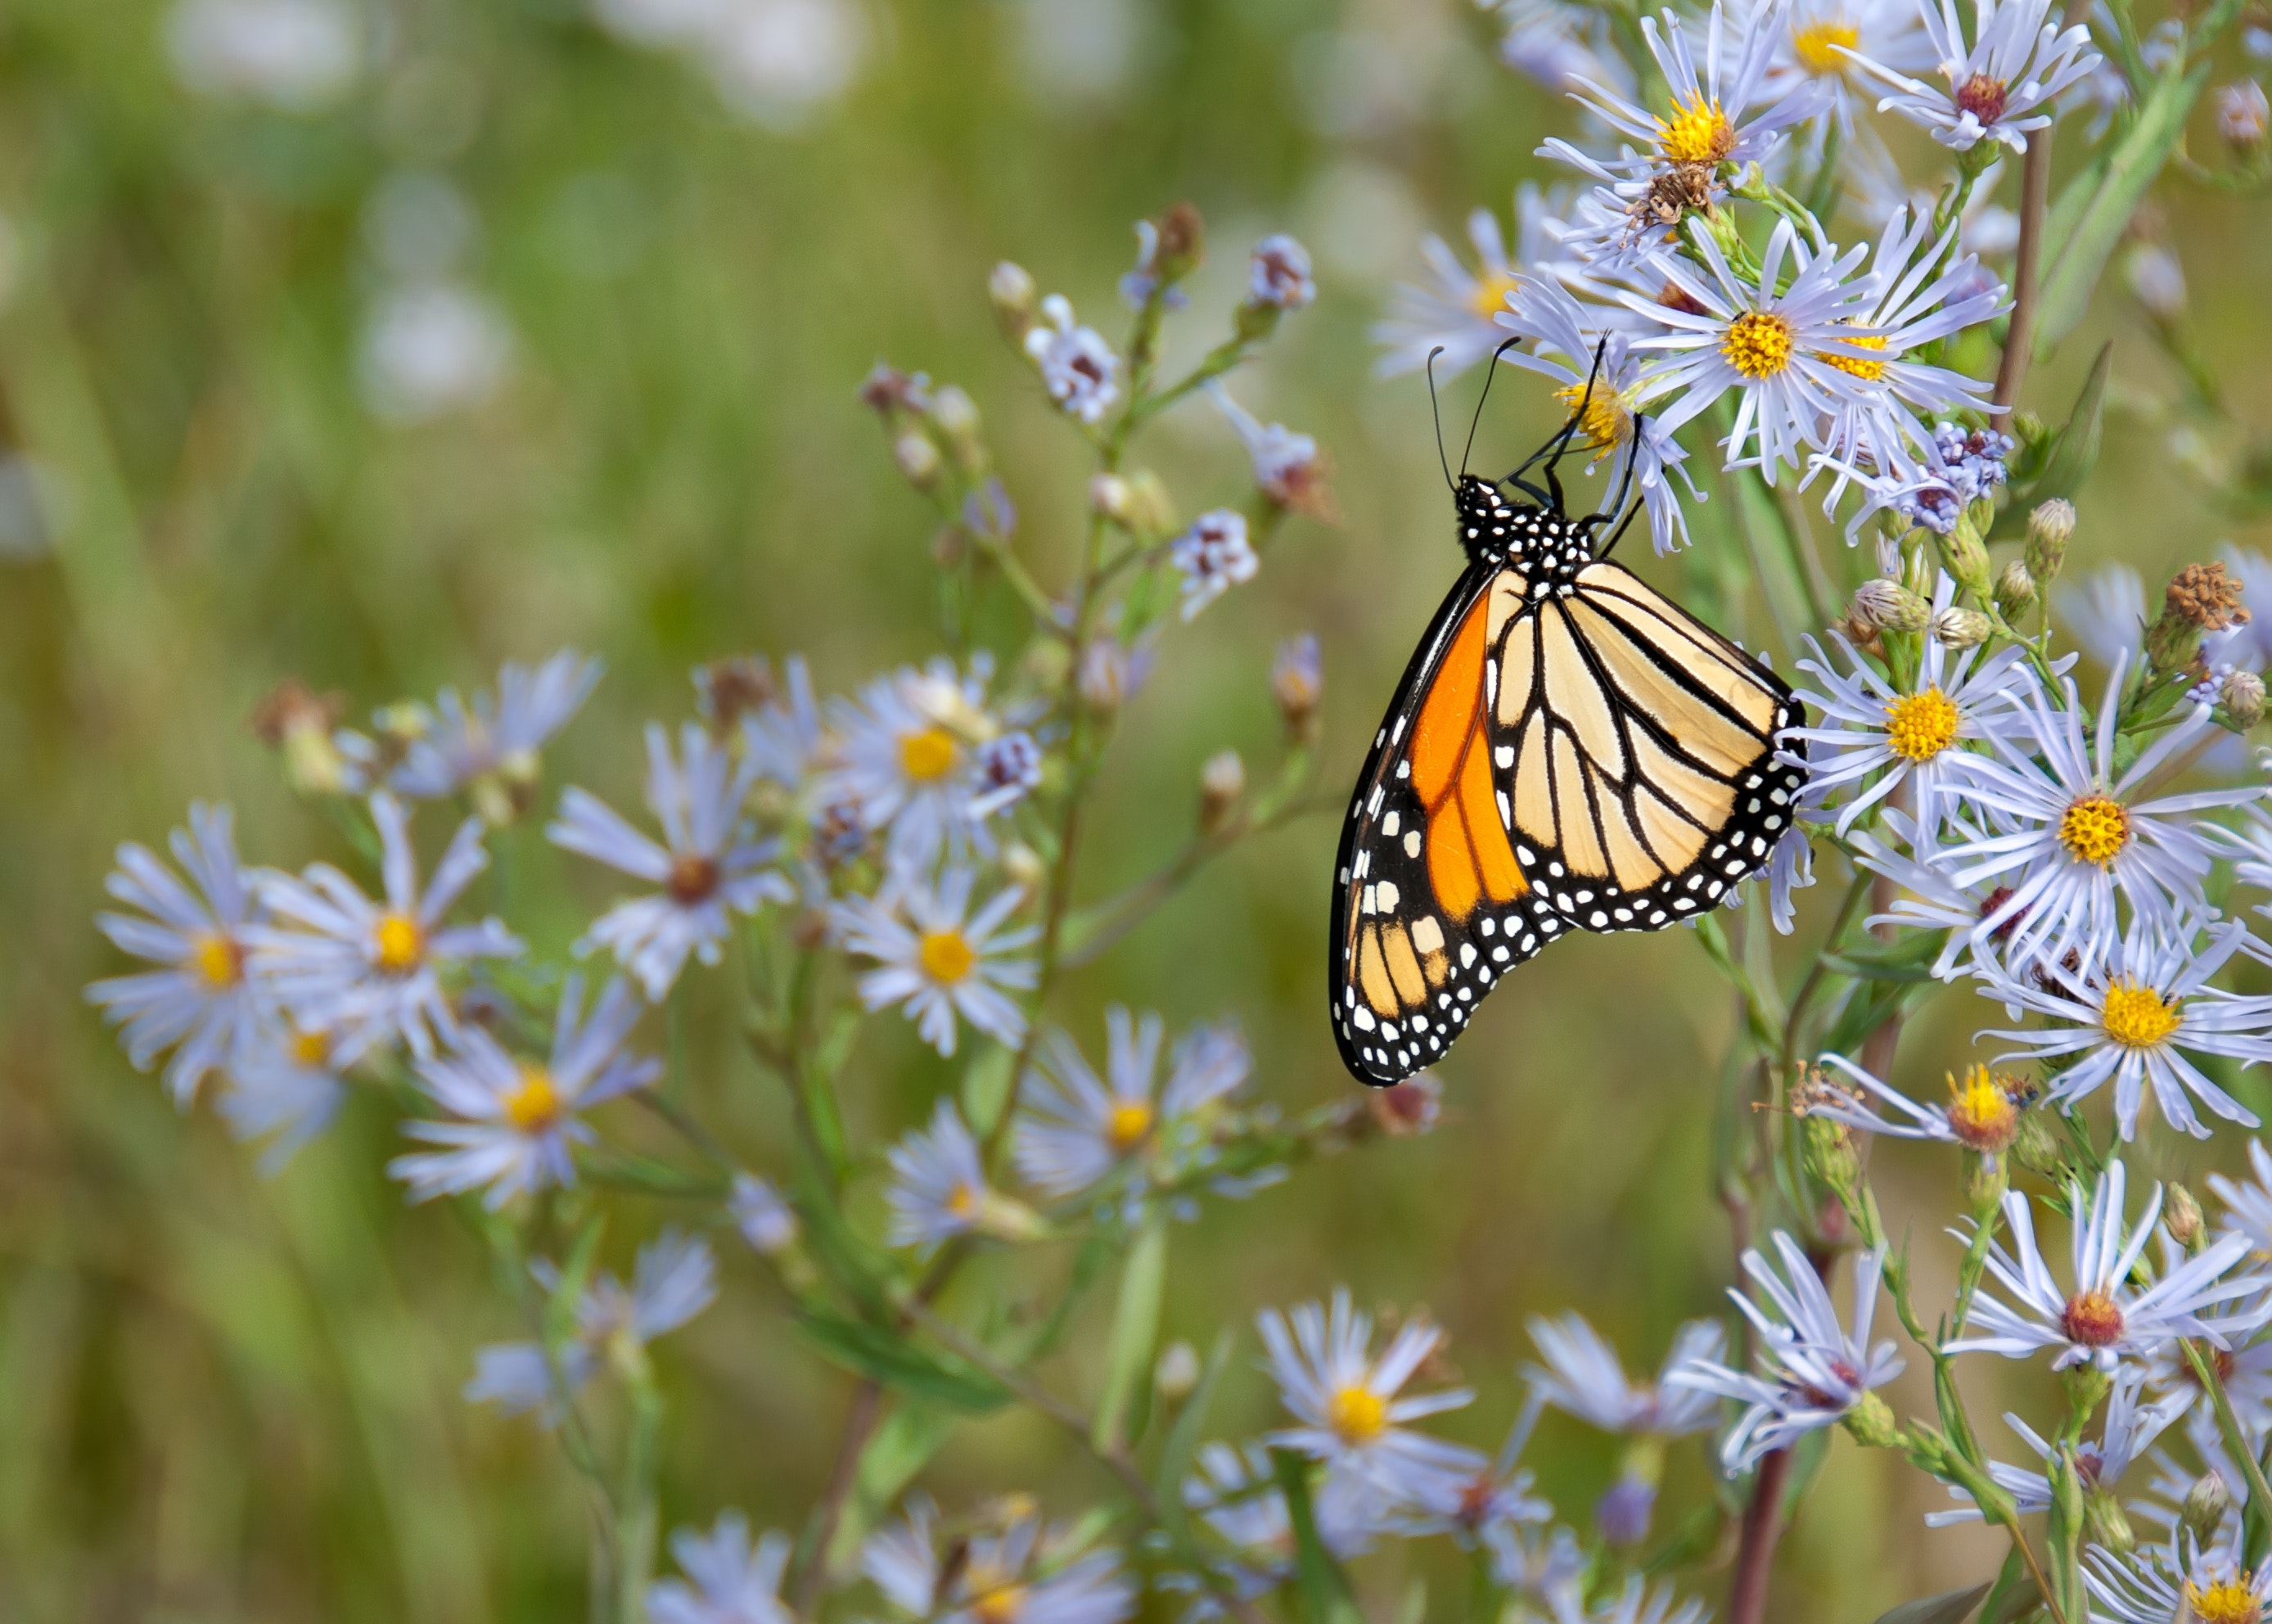 monarch-butterfly-on-flower-1564634